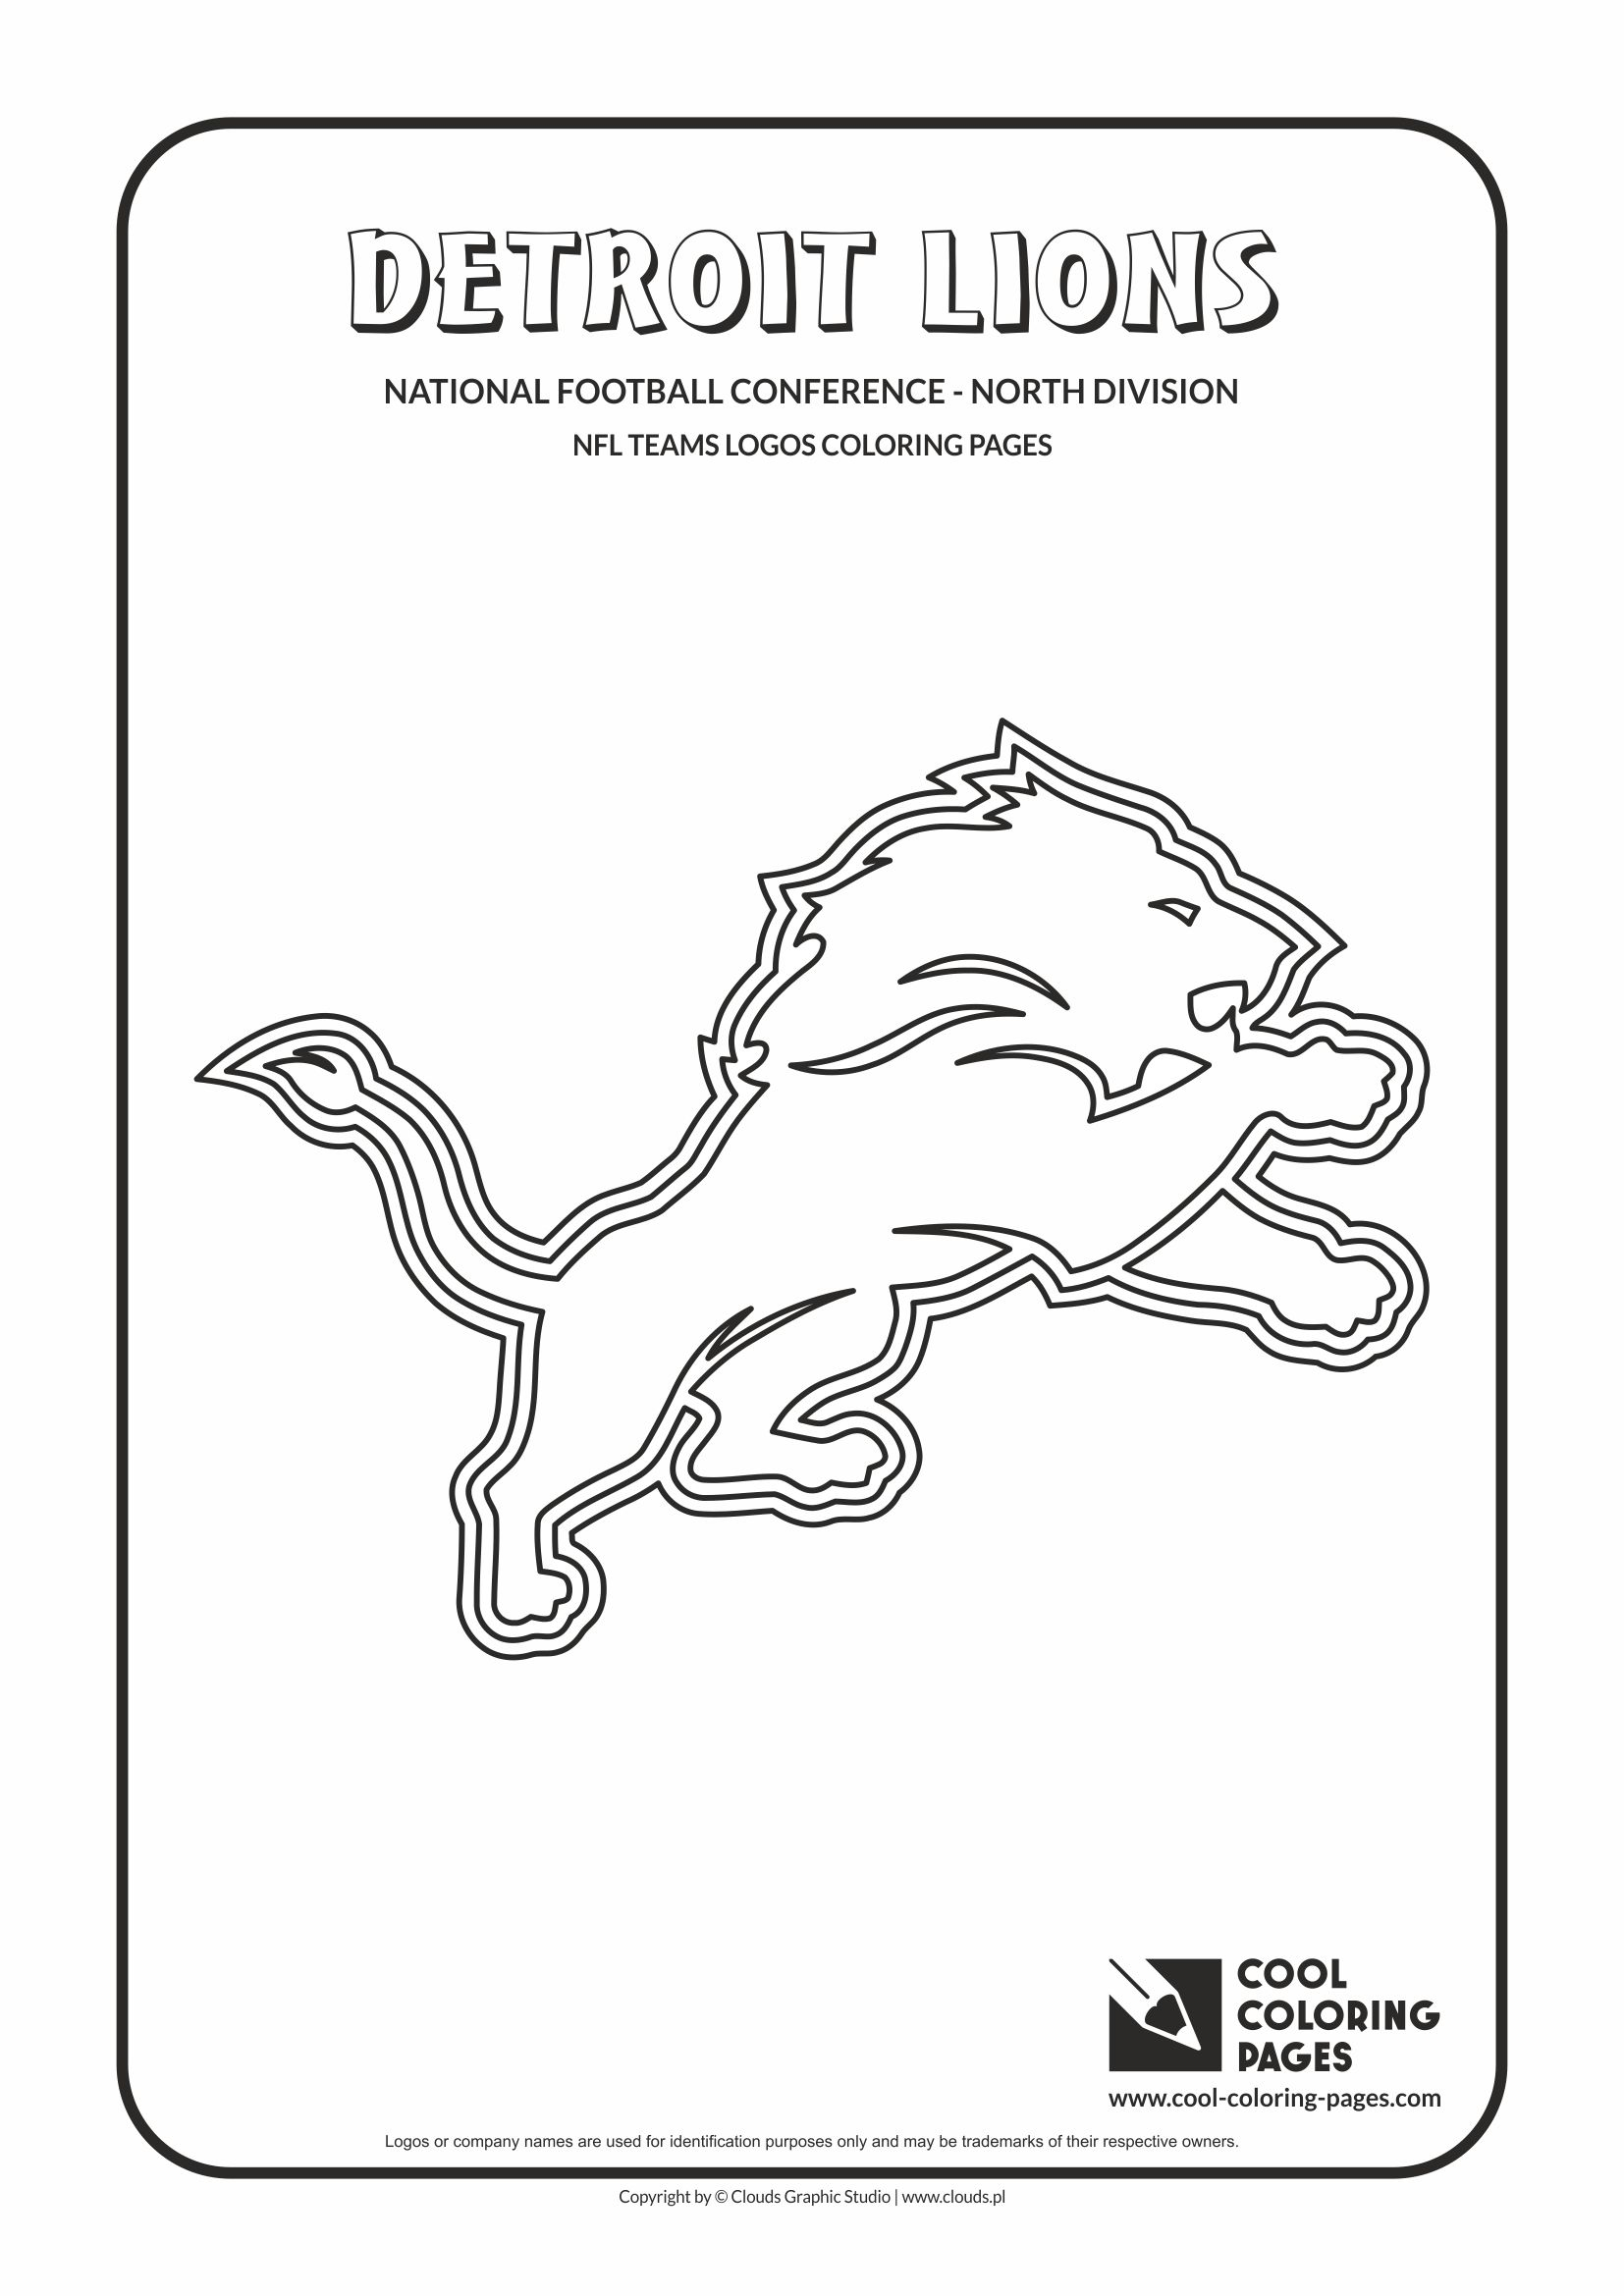 Cool coloring pages nfl teams logos coloring pages cool for Nfl team coloring pages